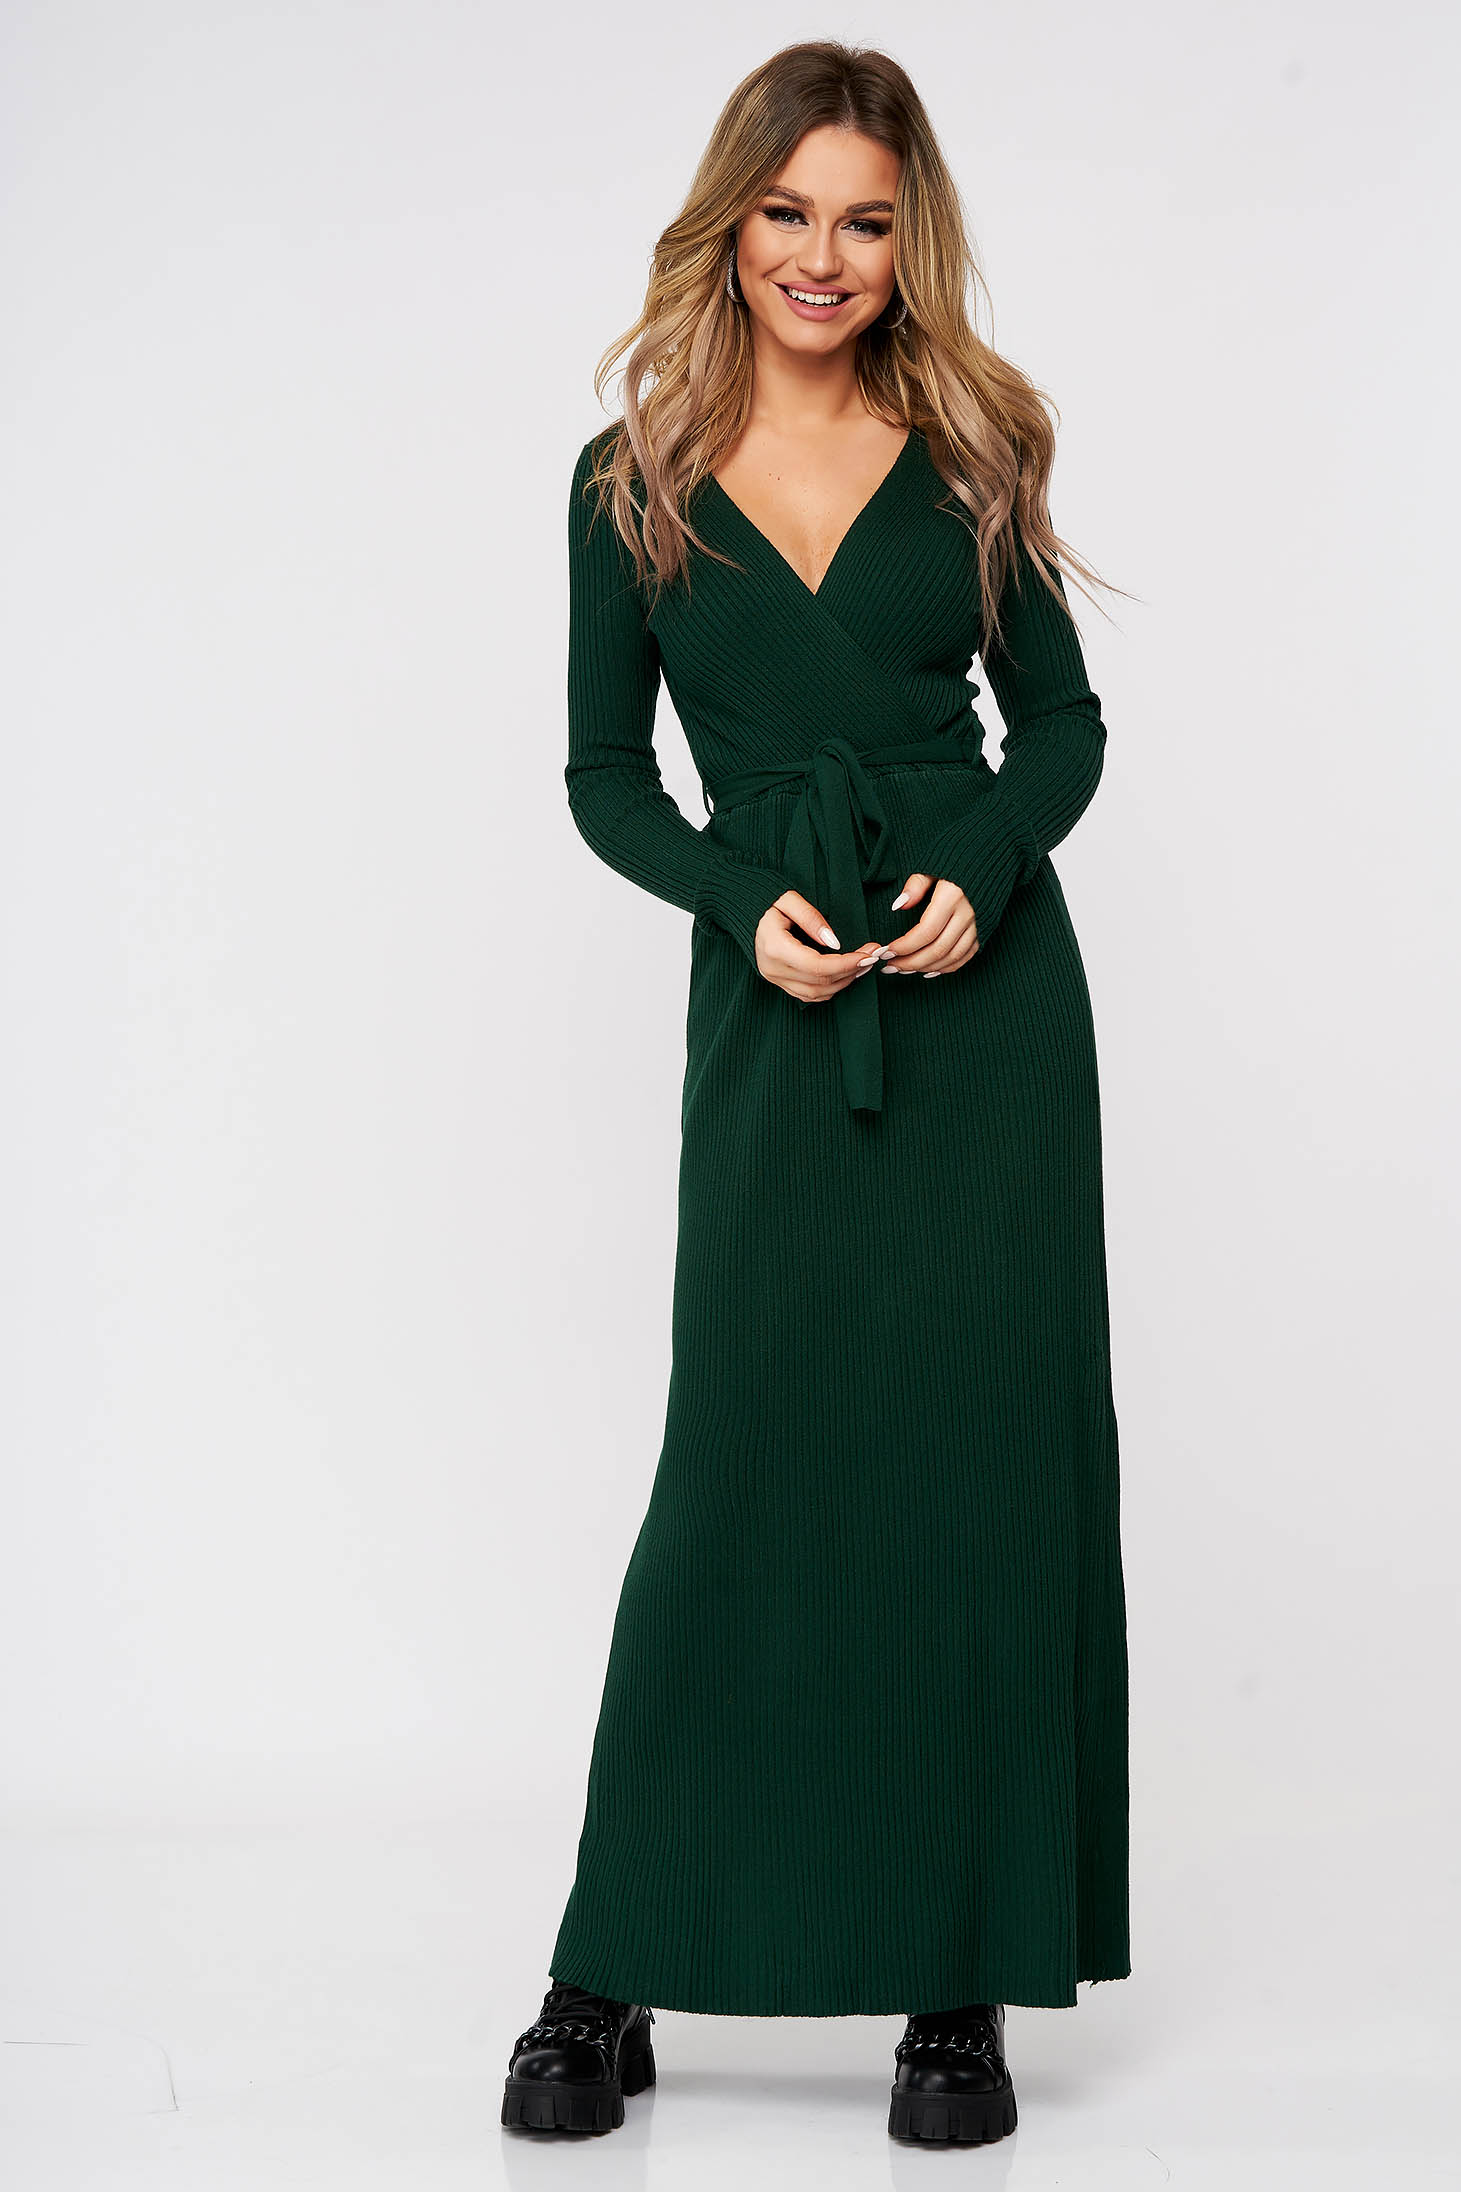 Green dress knitted accessorized with tied waistband from striped fabric from elastic and fine fabric casual